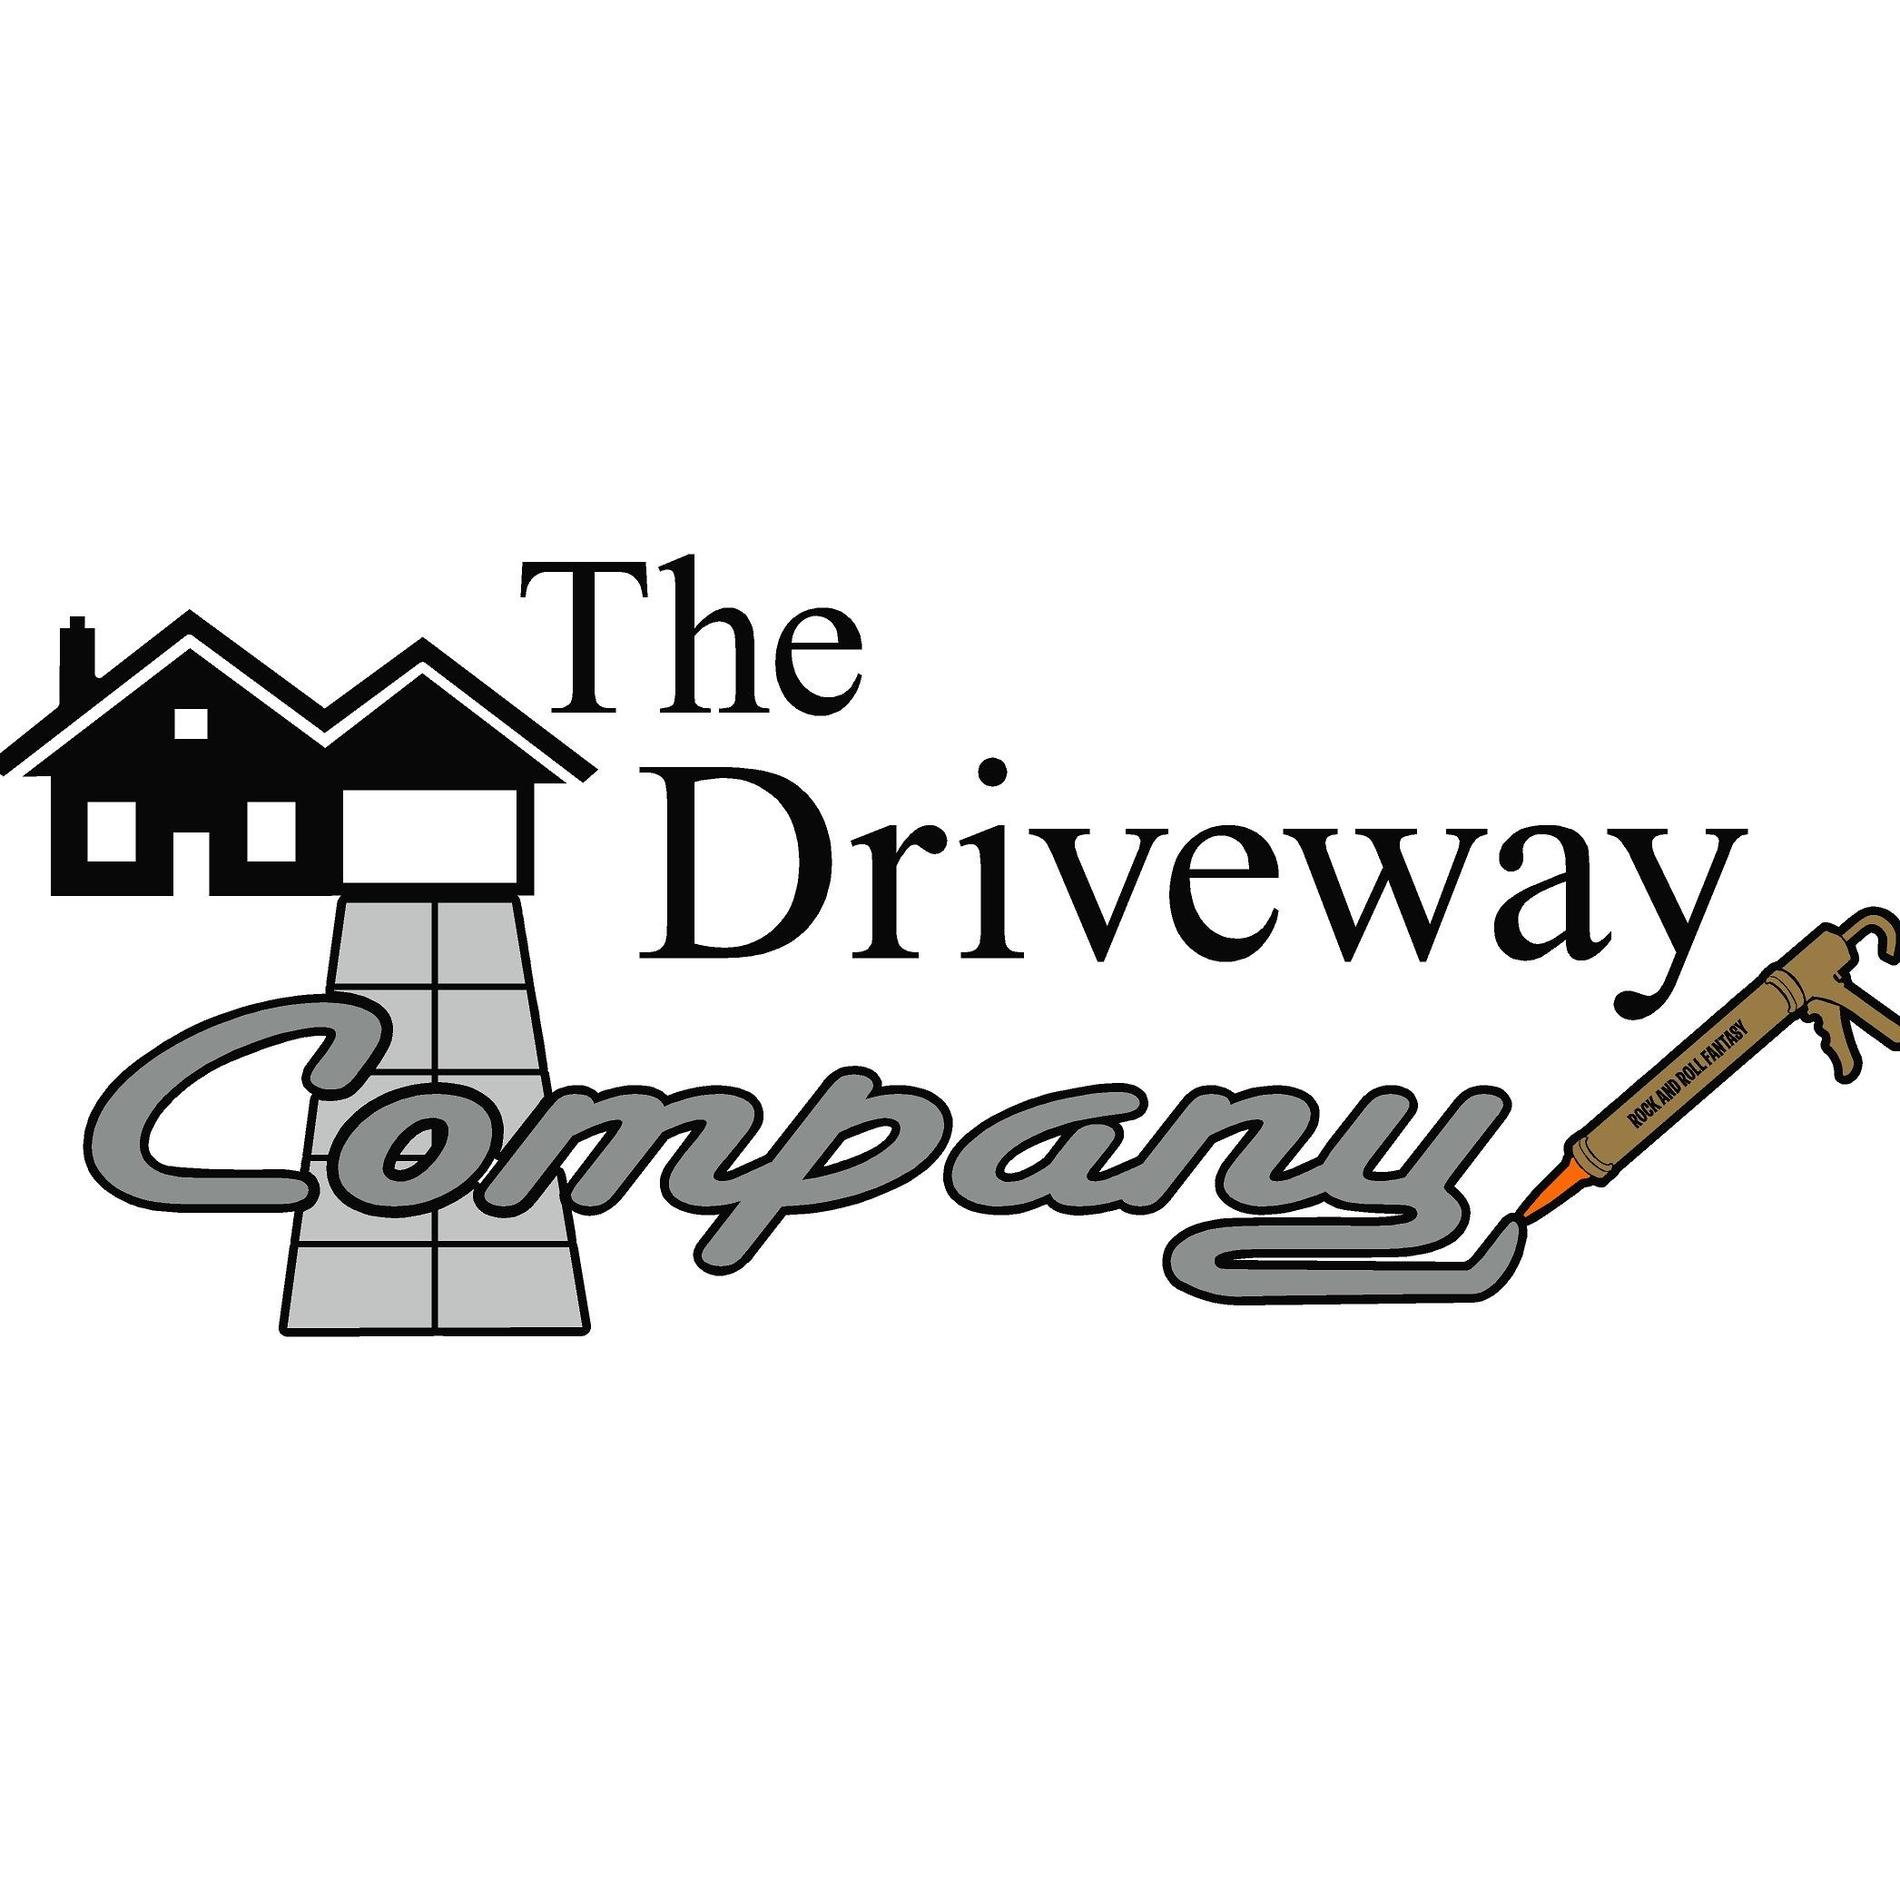 The Driveway Company